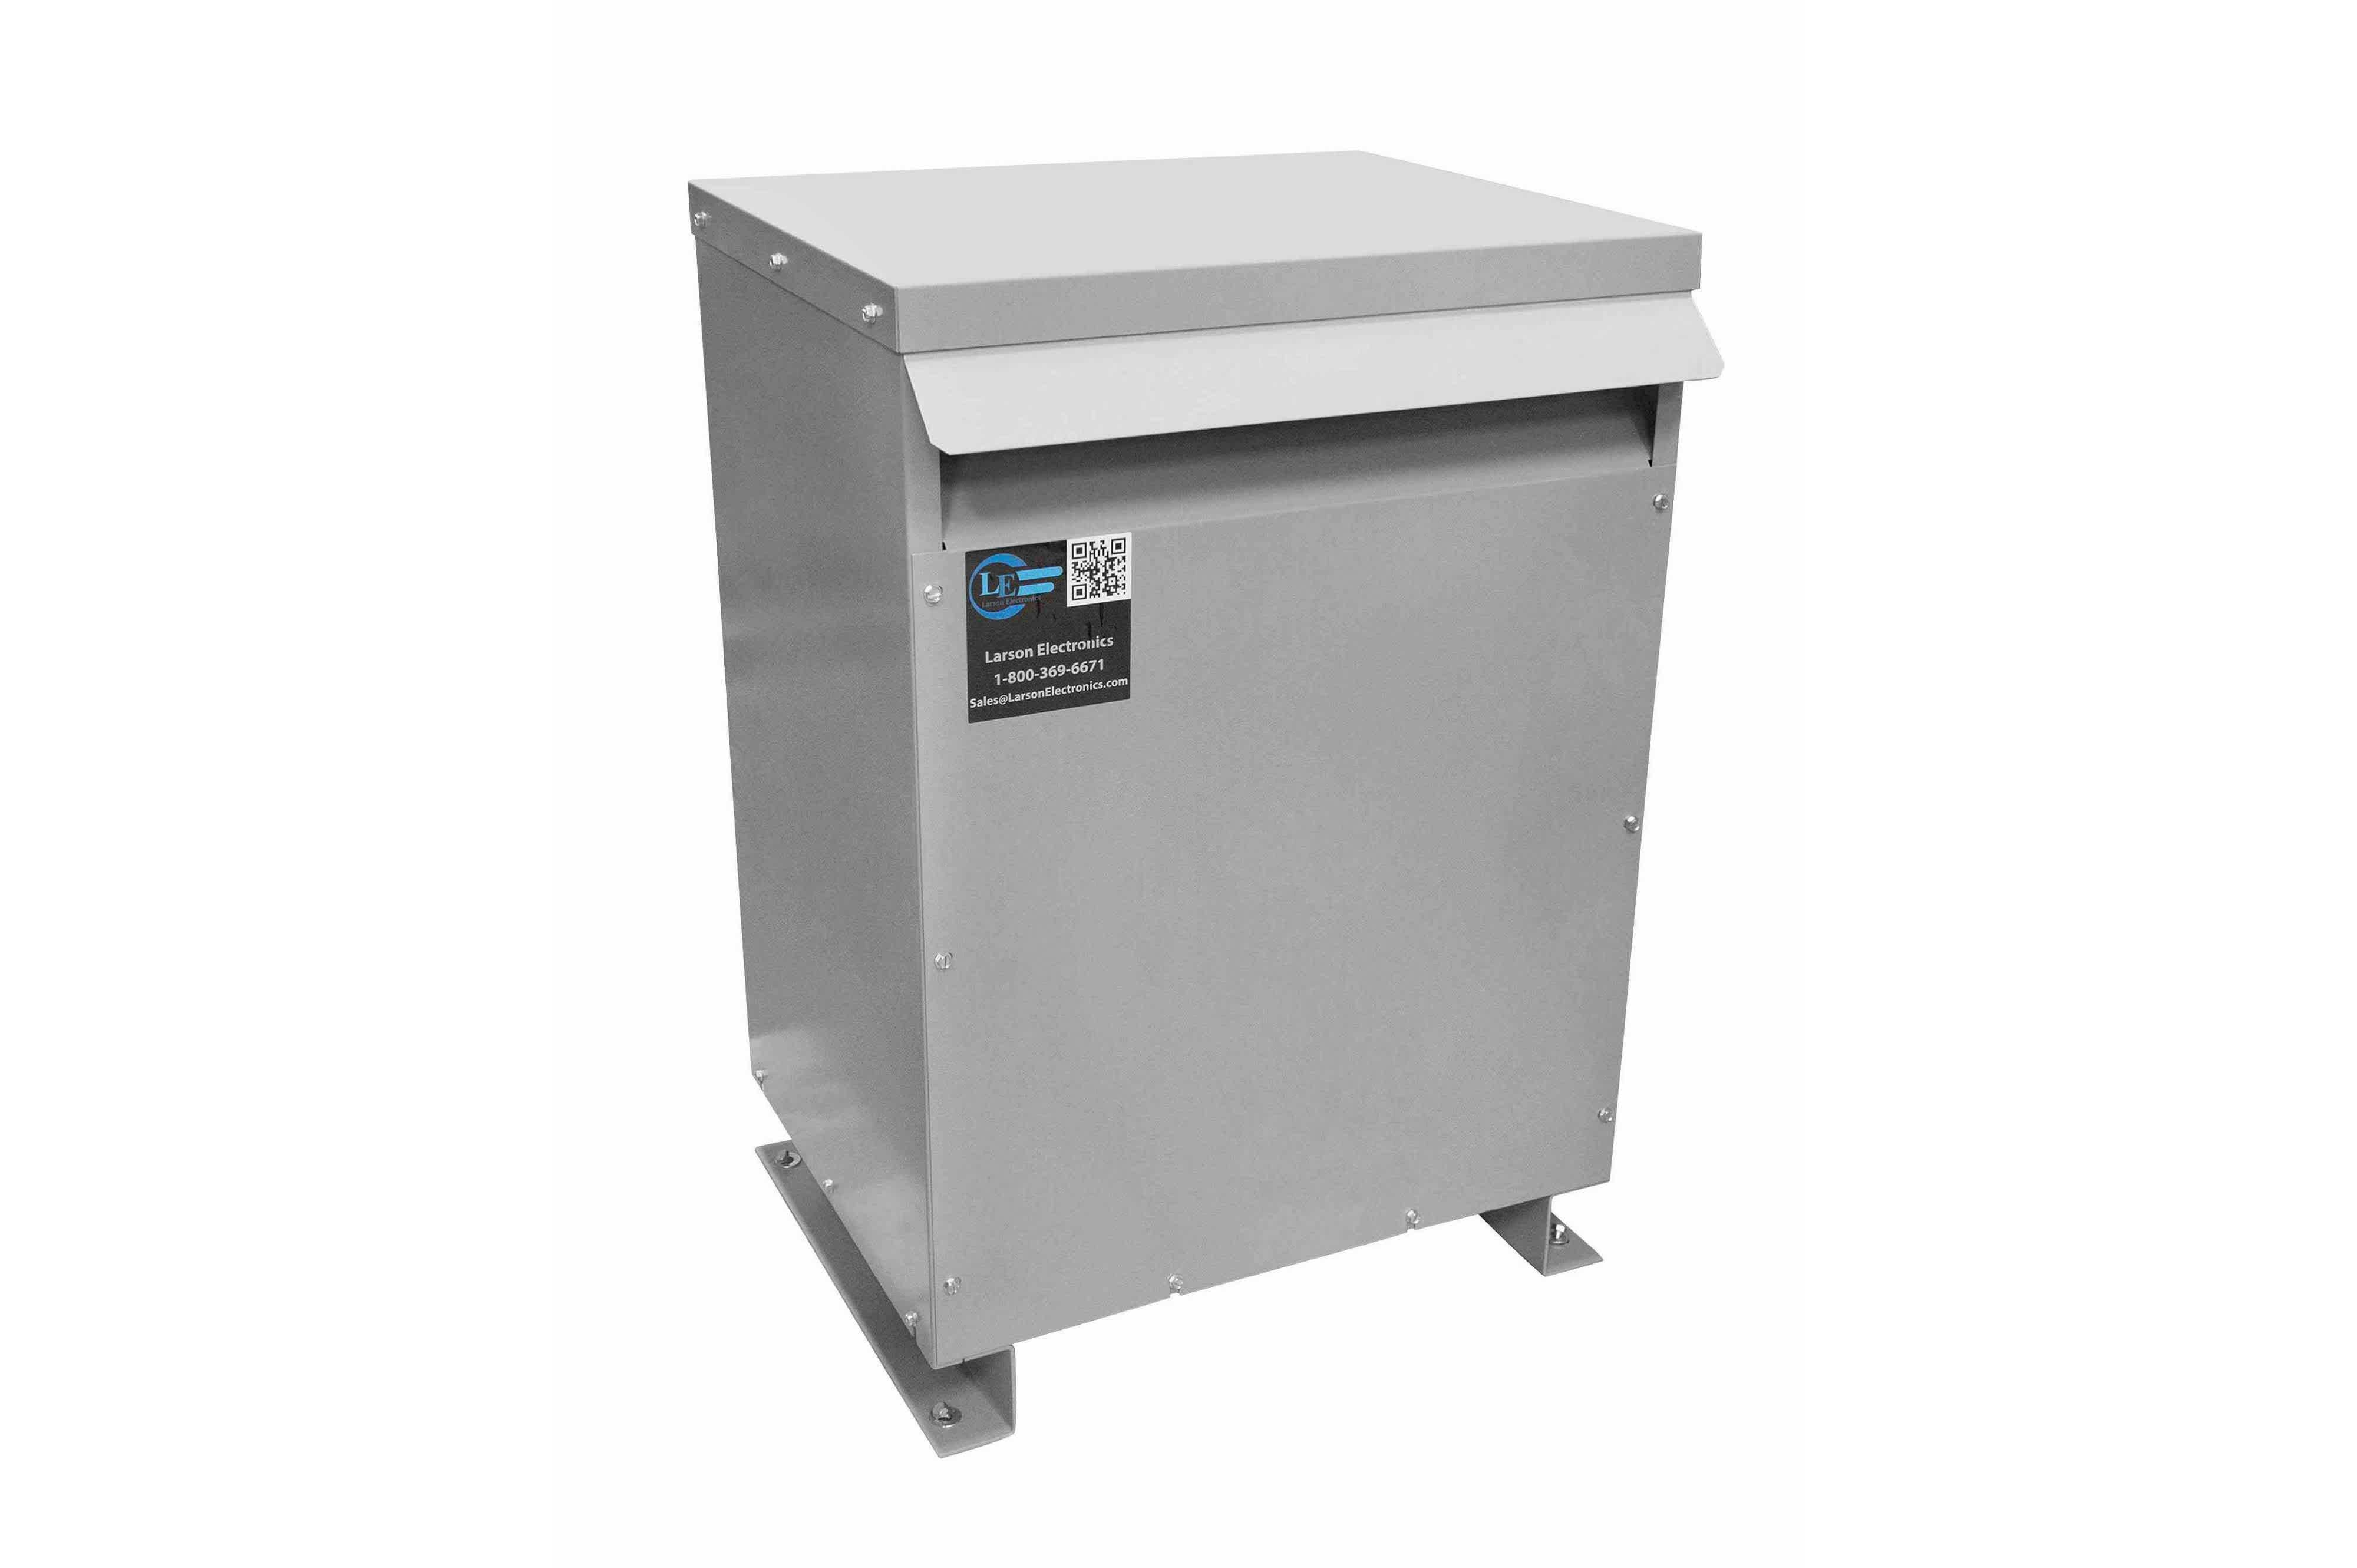 42.5 kVA 3PH Isolation Transformer, 400V Wye Primary, 240V Delta Secondary, N3R, Ventilated, 60 Hz